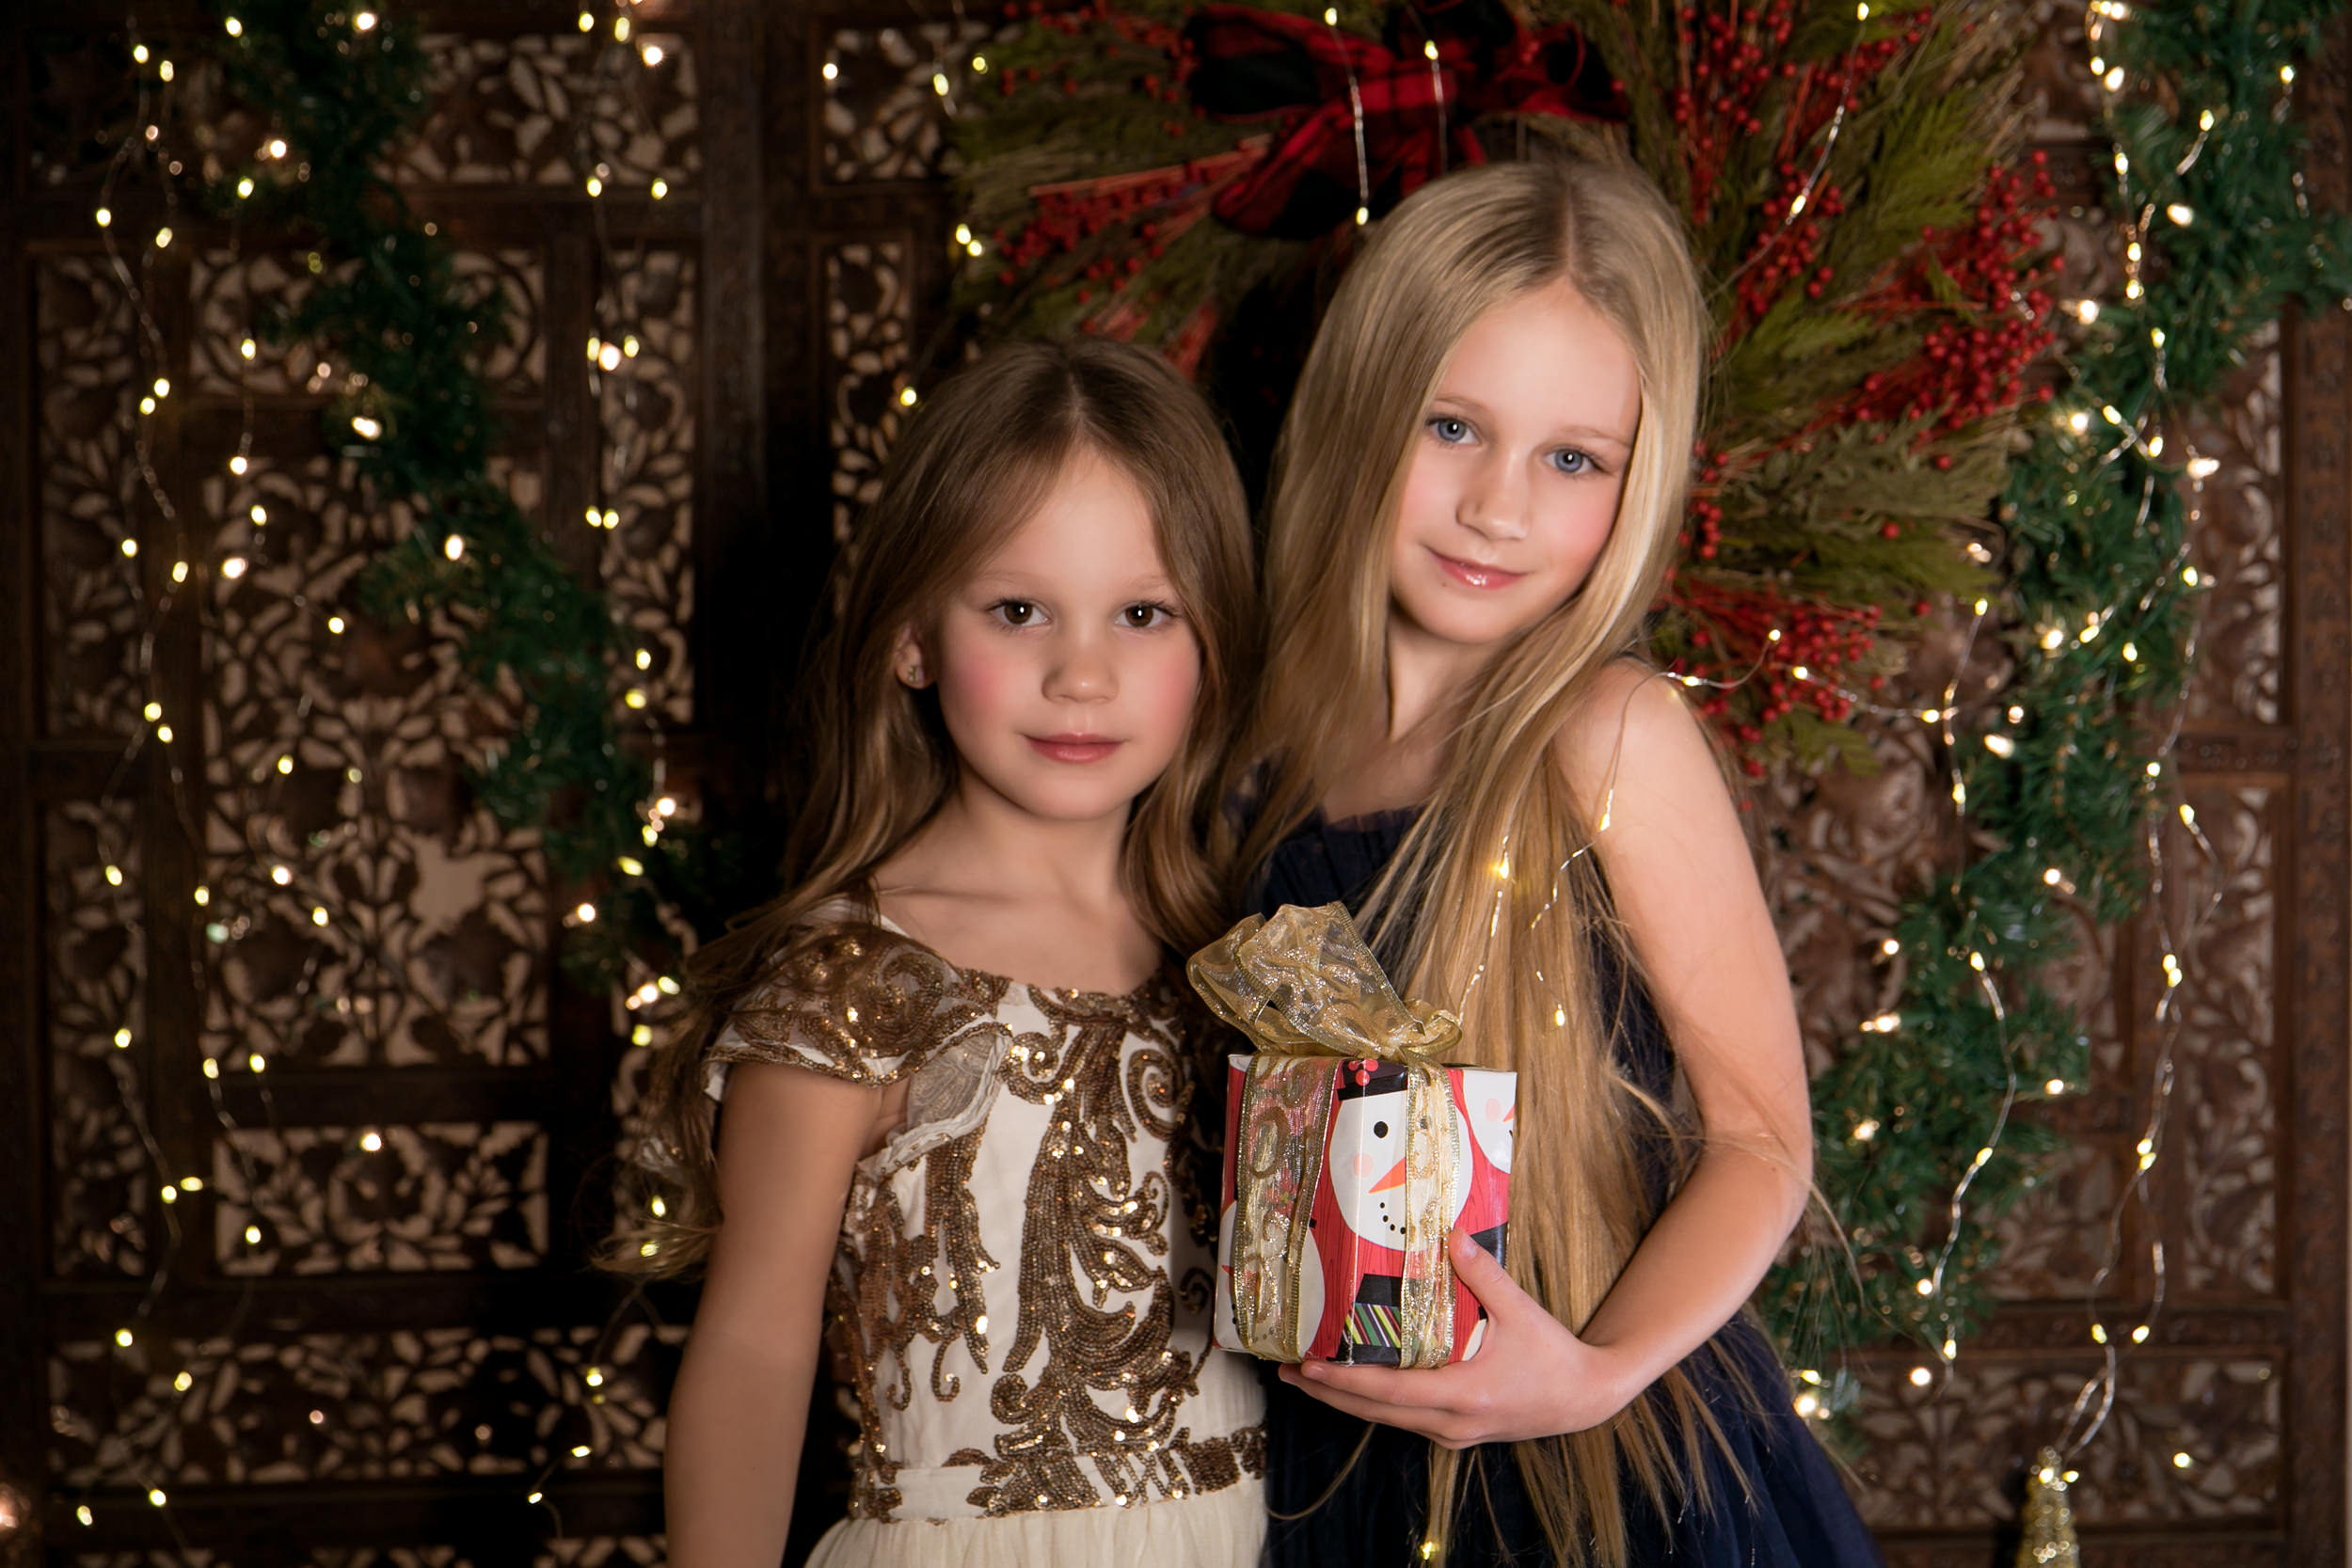 denver christmas photosession, studio children photosessions, styled photo session for kids, best studio photographer denver, colorado best studio photography, studio photo session in denver, children photographer in denver, denver photography, best kids photo, denver best children photographer, kids photographer, styled photosession, children photosession, kids photography, styled child photo session, photographer, kids photographer, child photography, whimsical photos, colorado best photographer, awesome kids photos, outdoor portraits, kids portraiture, children portrait photographer